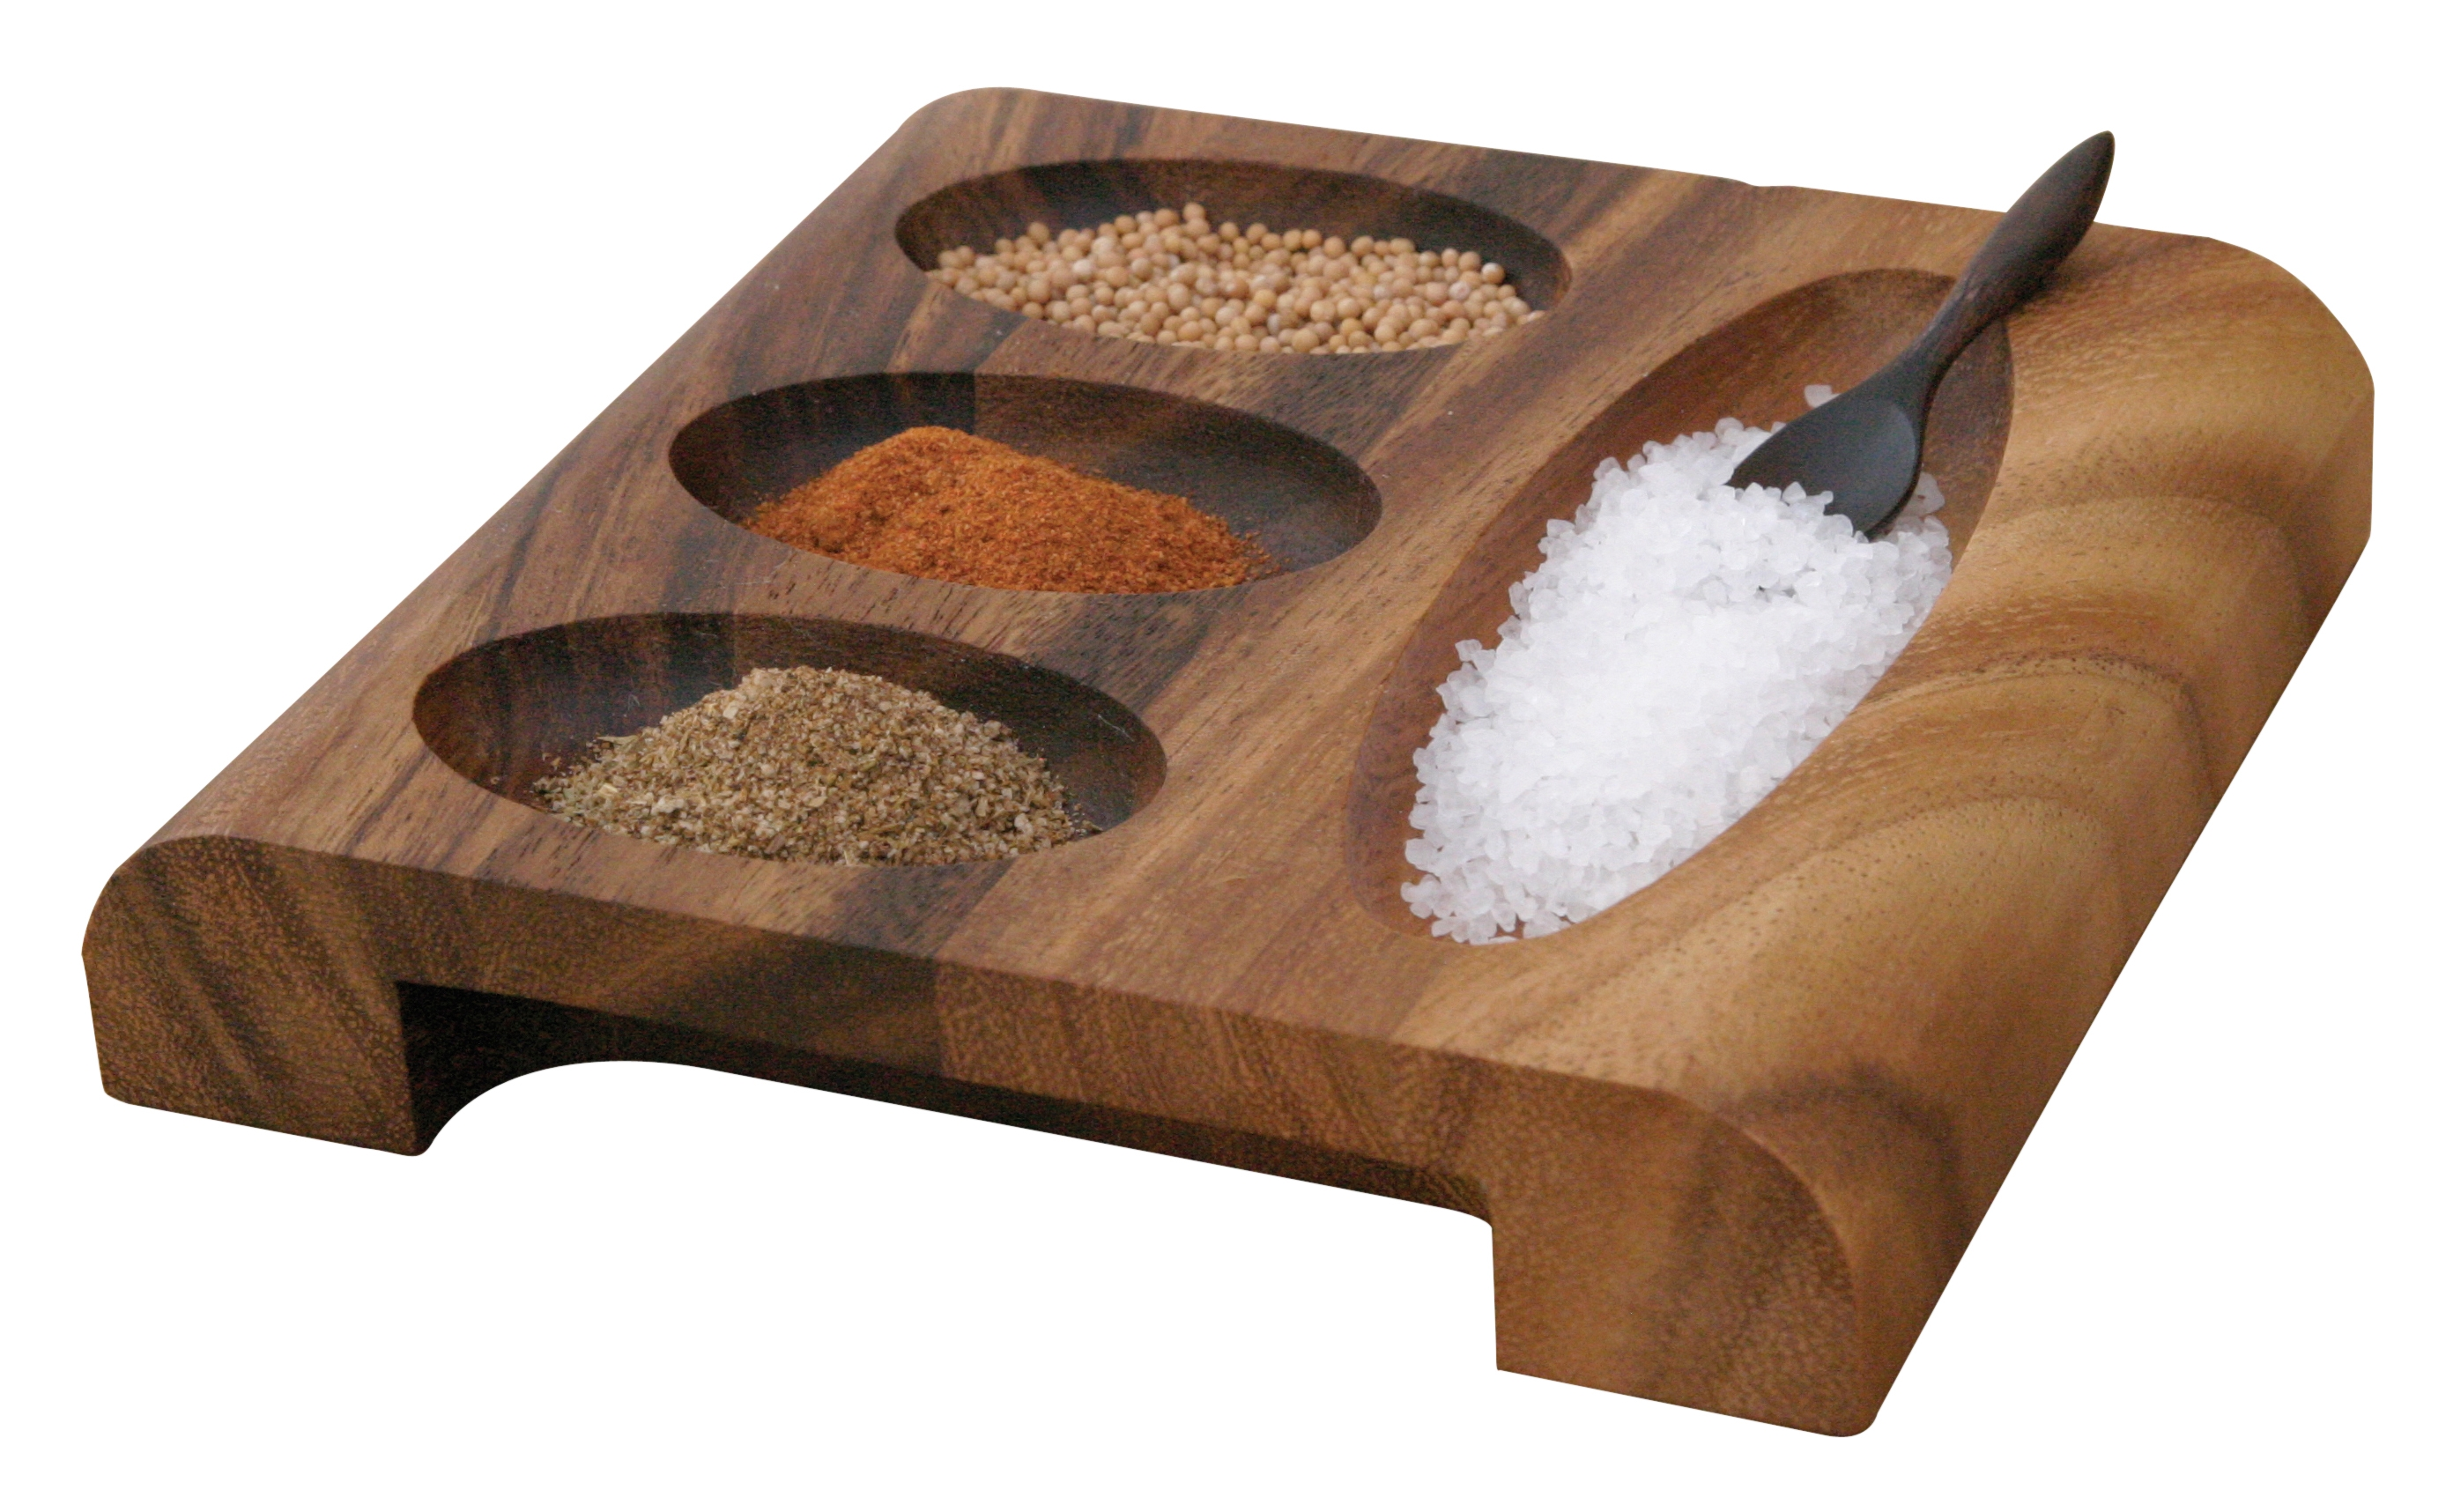 Ironwood Gourmet Acacia Wood Spice Tray